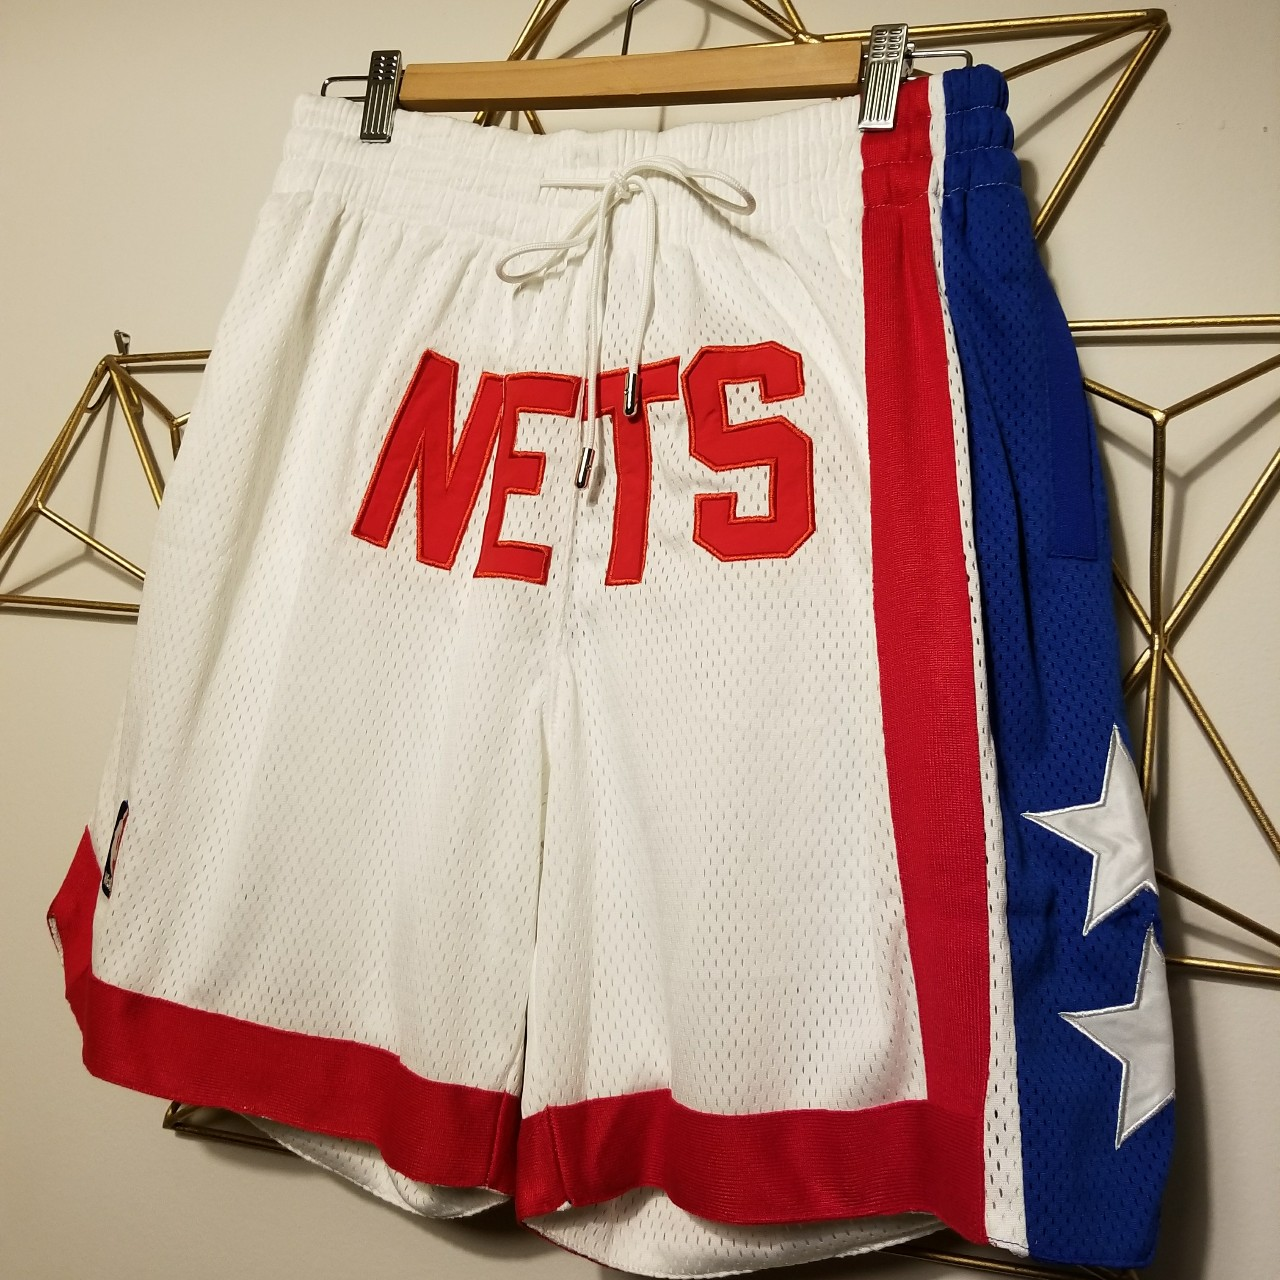 buy popular 8ad60 4108e New Jersey NETS Throwback 90s Basketball shorts Just ...